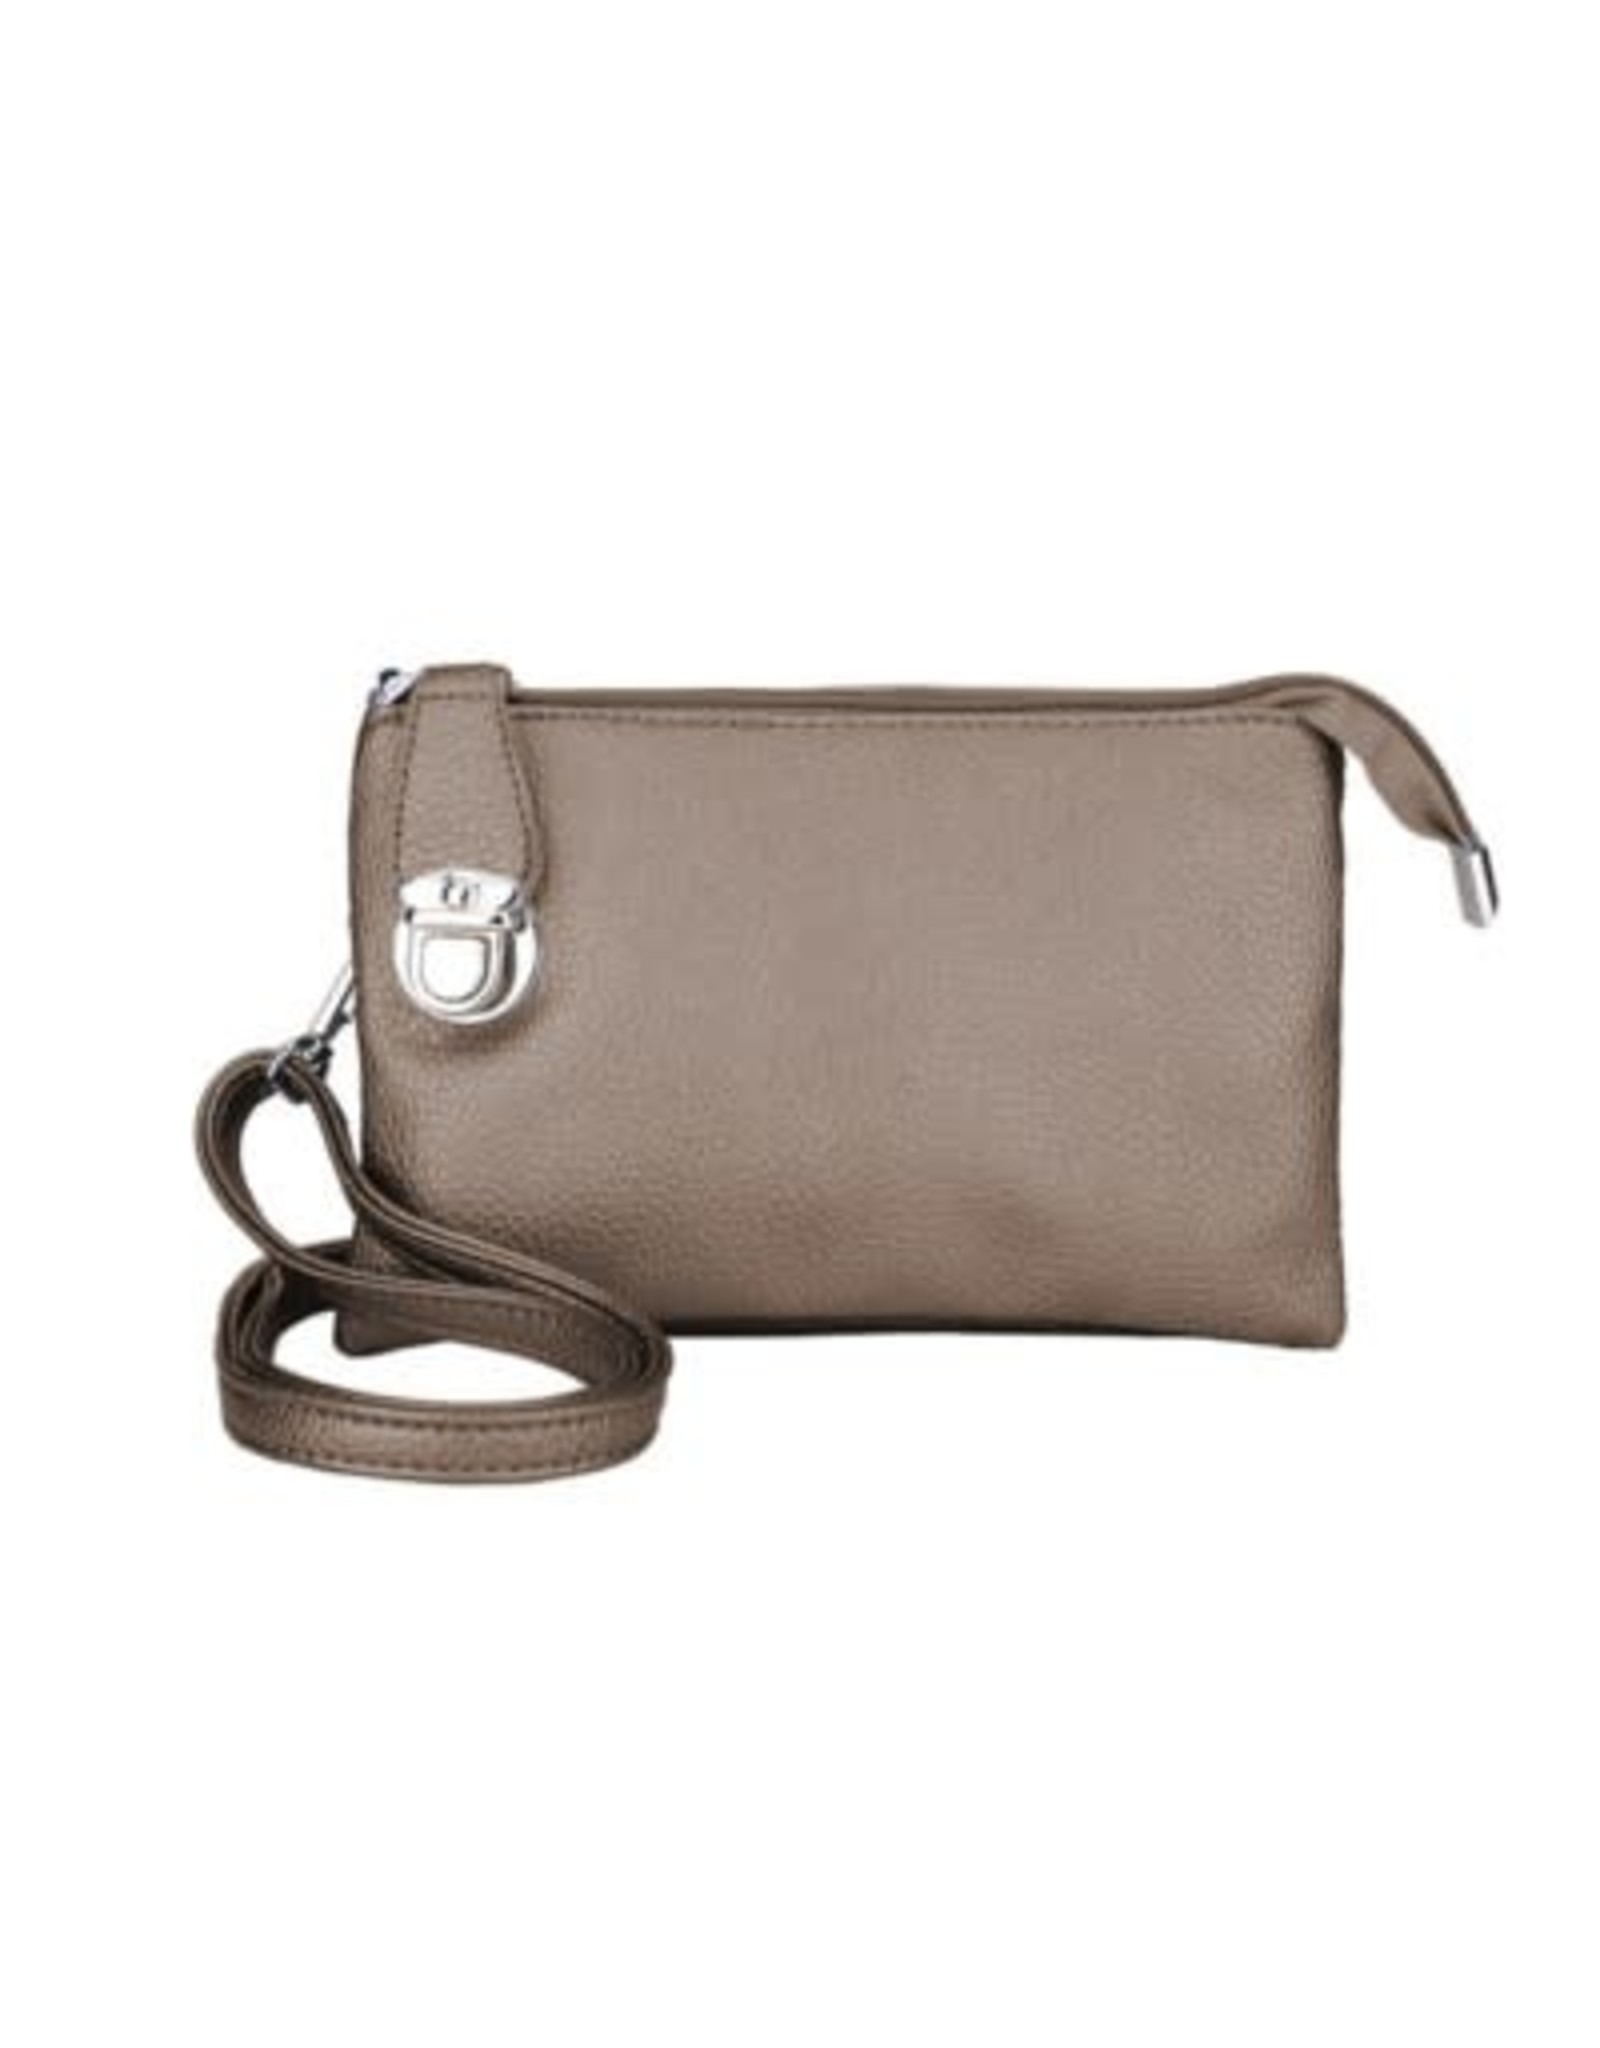 Buckle Clutch with Cross Body  Strap